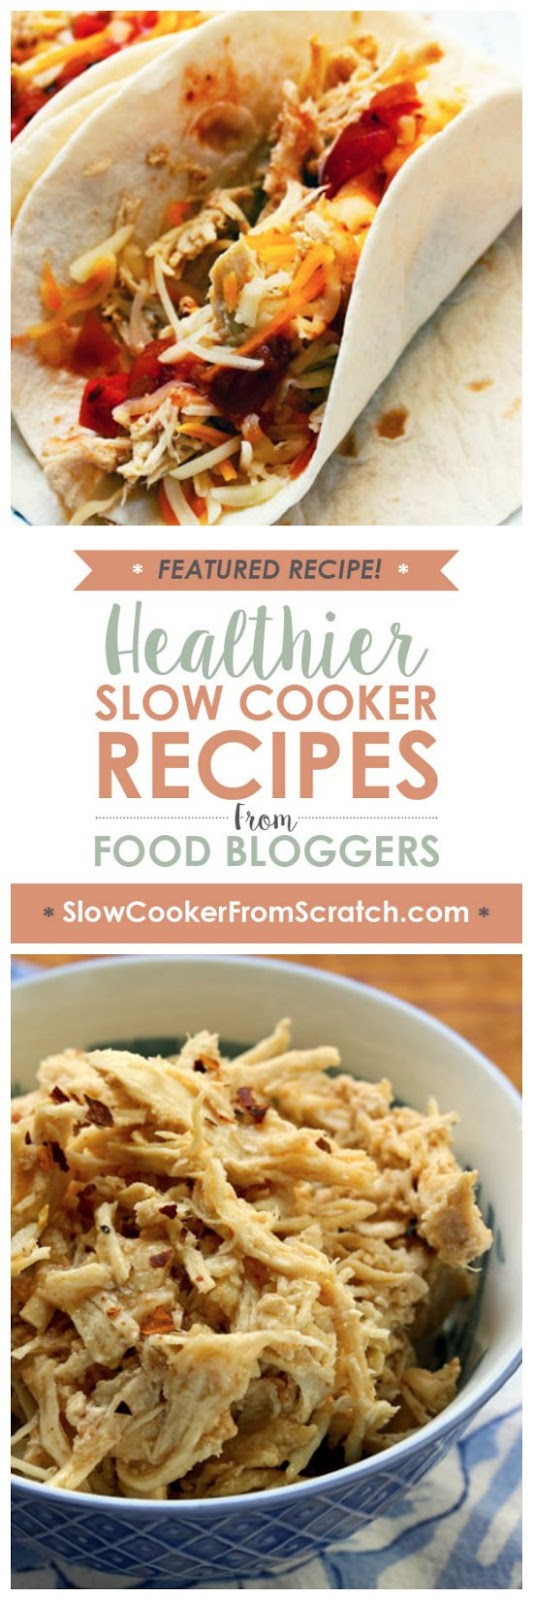 Slow Cooker Shredded Barbecue Chicken from The Perfect Pantry featured on SlowCookerFromScratch.com